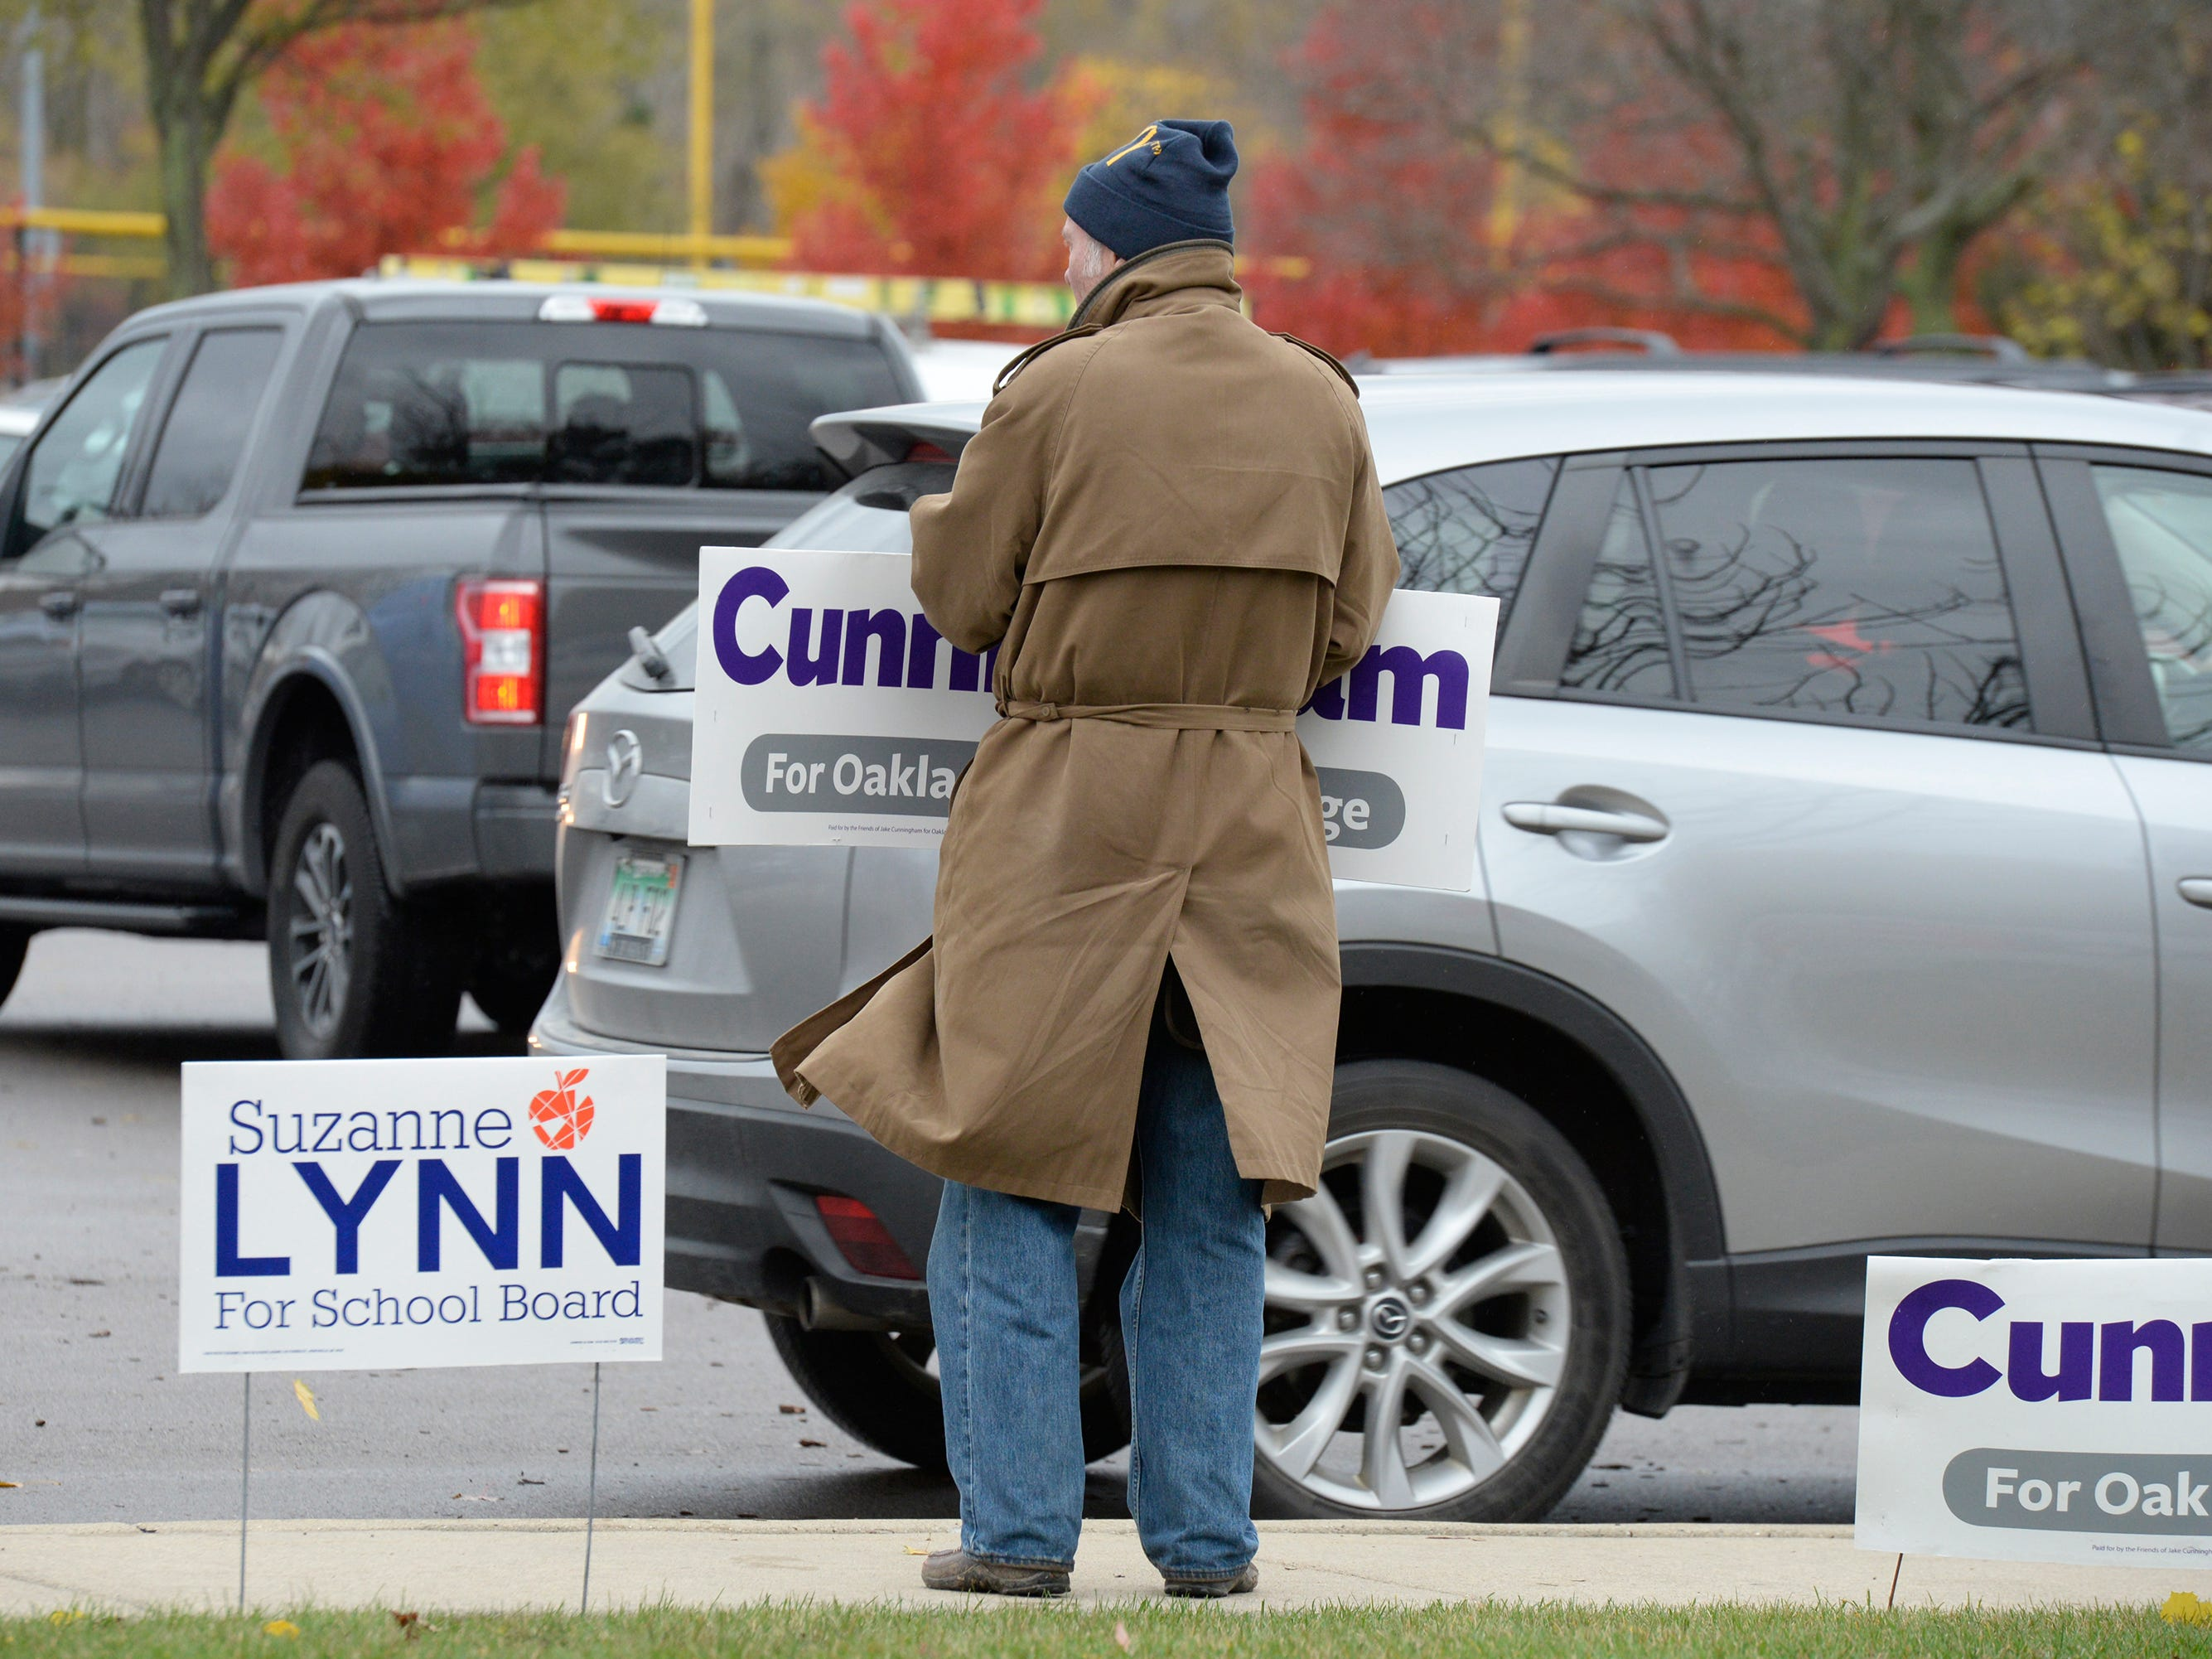 Jay Cunningham, father of Jake Cunningham - a candidate for Oakland Circuit Judge, works the polls at Novi Civic Center on election day Nov. 6, 2018.